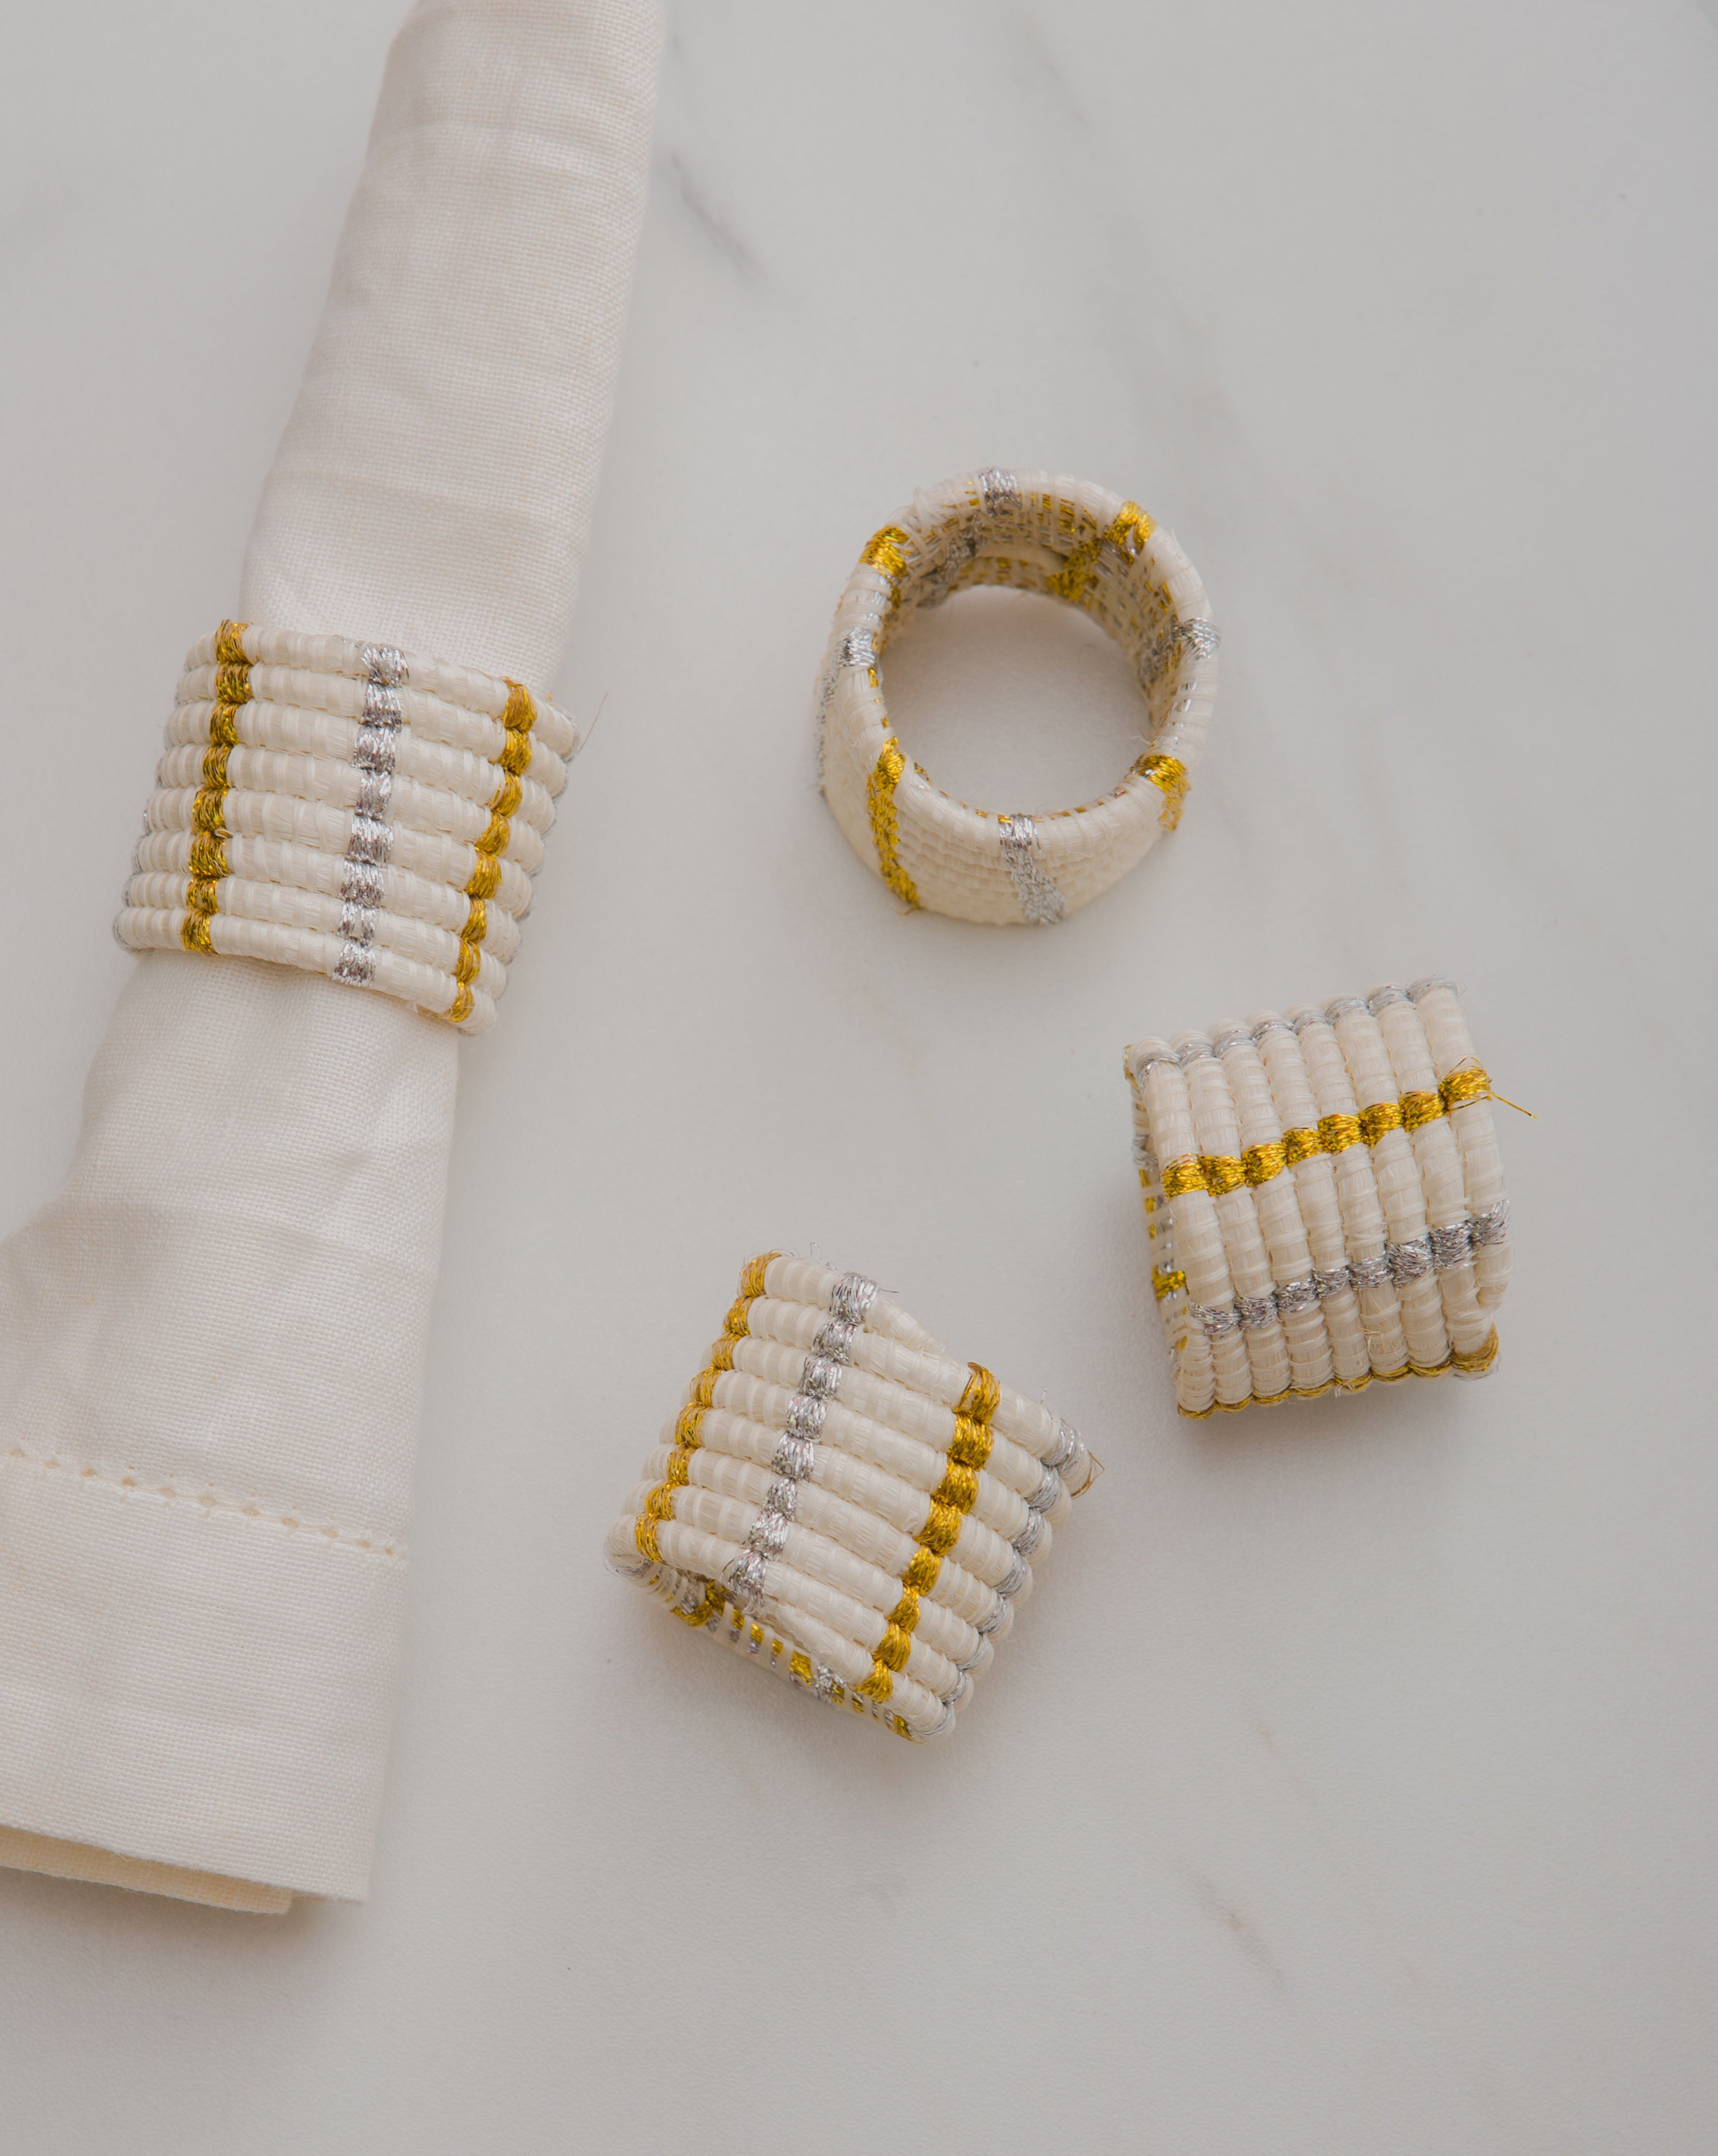 Metallic Gold + Silver Napkin Rings, Set of 4 - KAZI - Artisan made high quality home decor and wall art